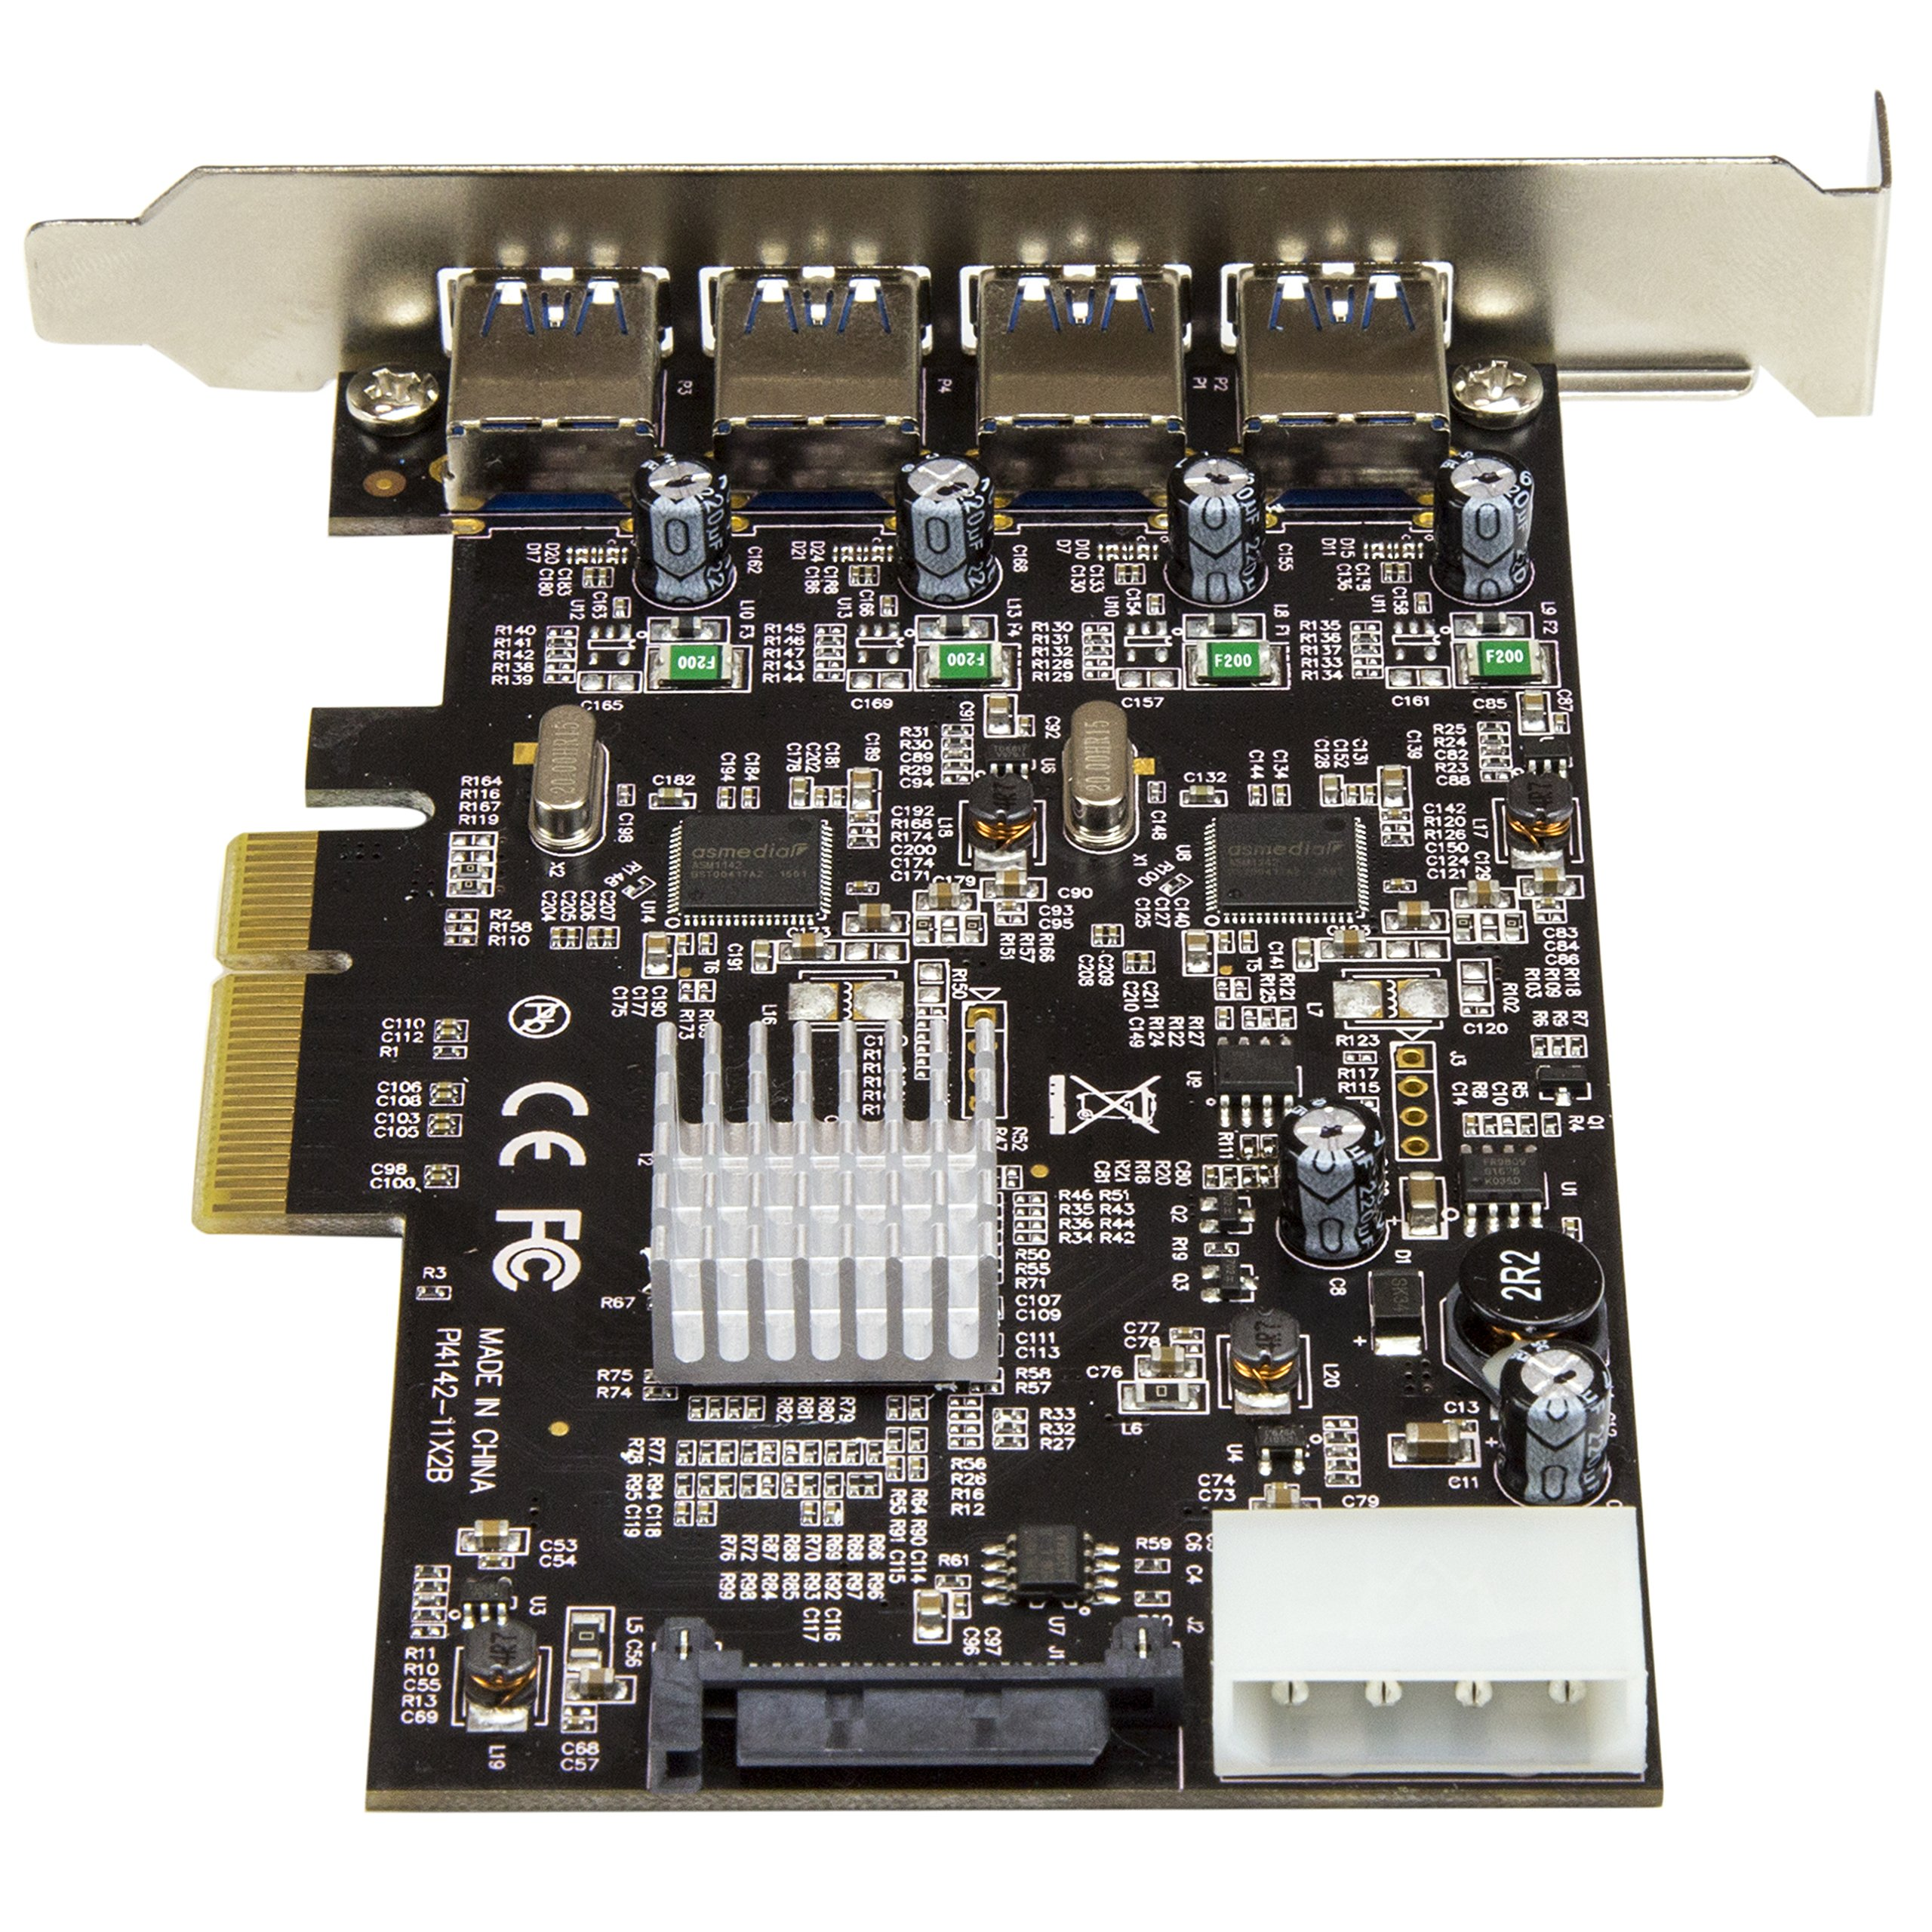 StarTech.com USB 3.1 PCI-e Card – 4 Port – 4x USB-A with Two 10Gbps Dedicated Channels – Expansion Card – USB 3.1 card by StarTech (Image #4)